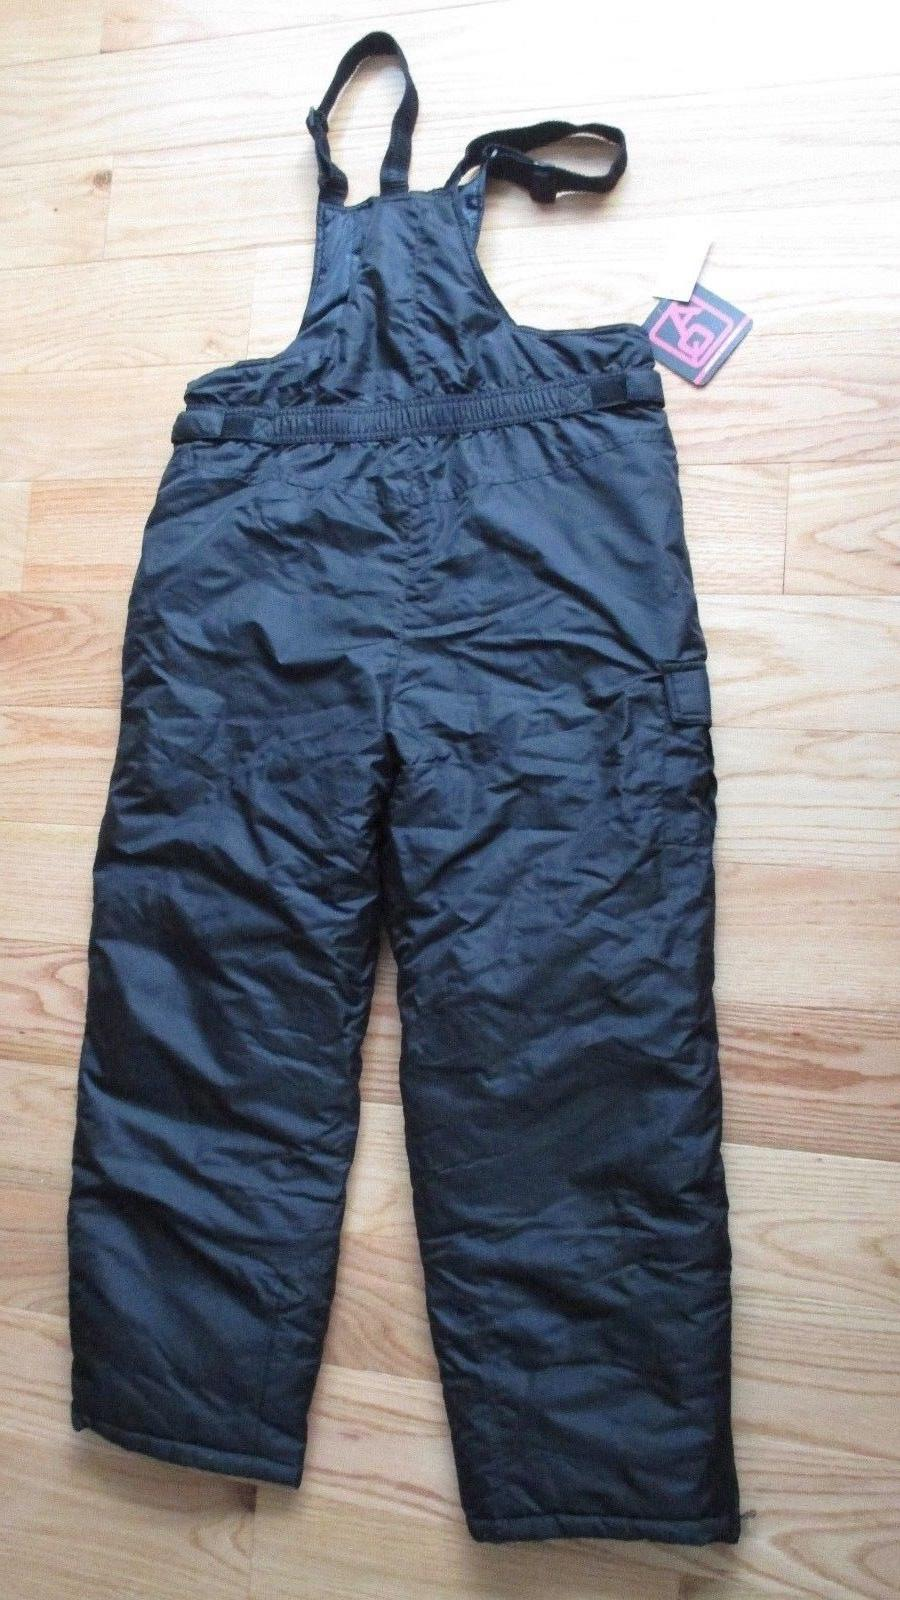 New! Quest Black SKI PANTS size Large NWT!